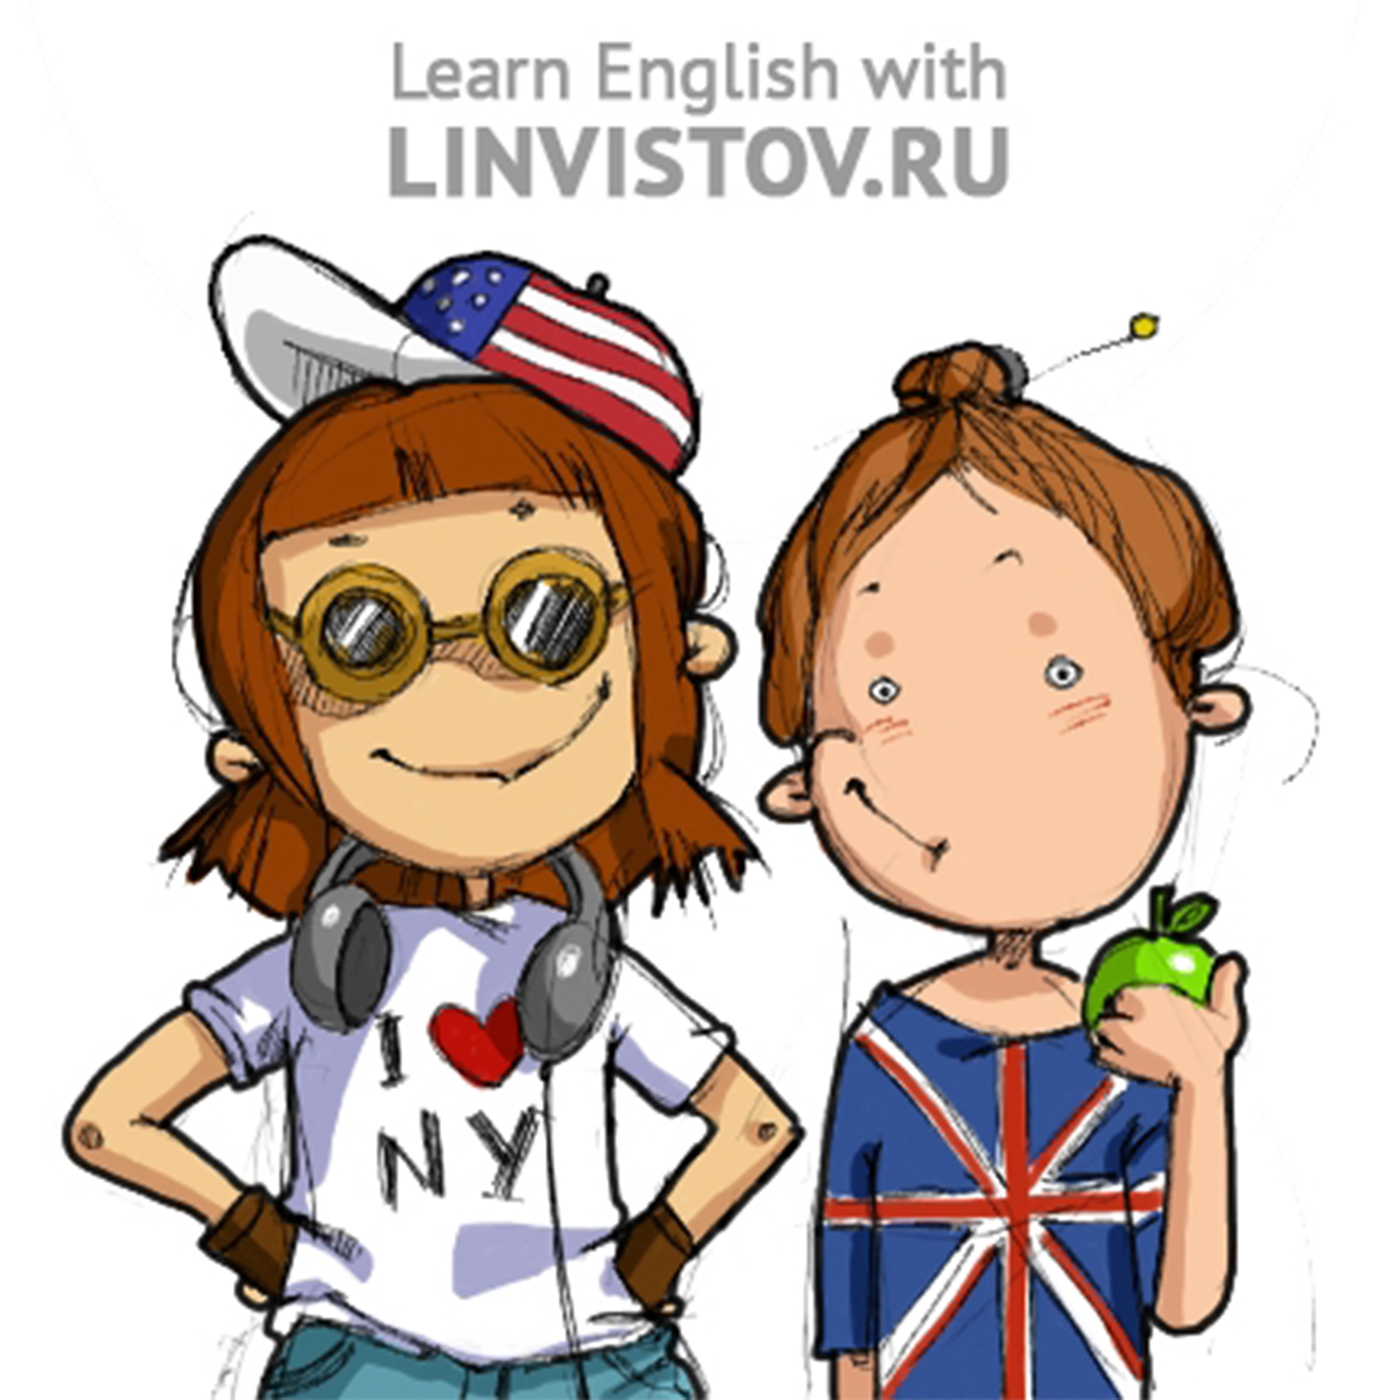 Learn English with LINGVISTOV